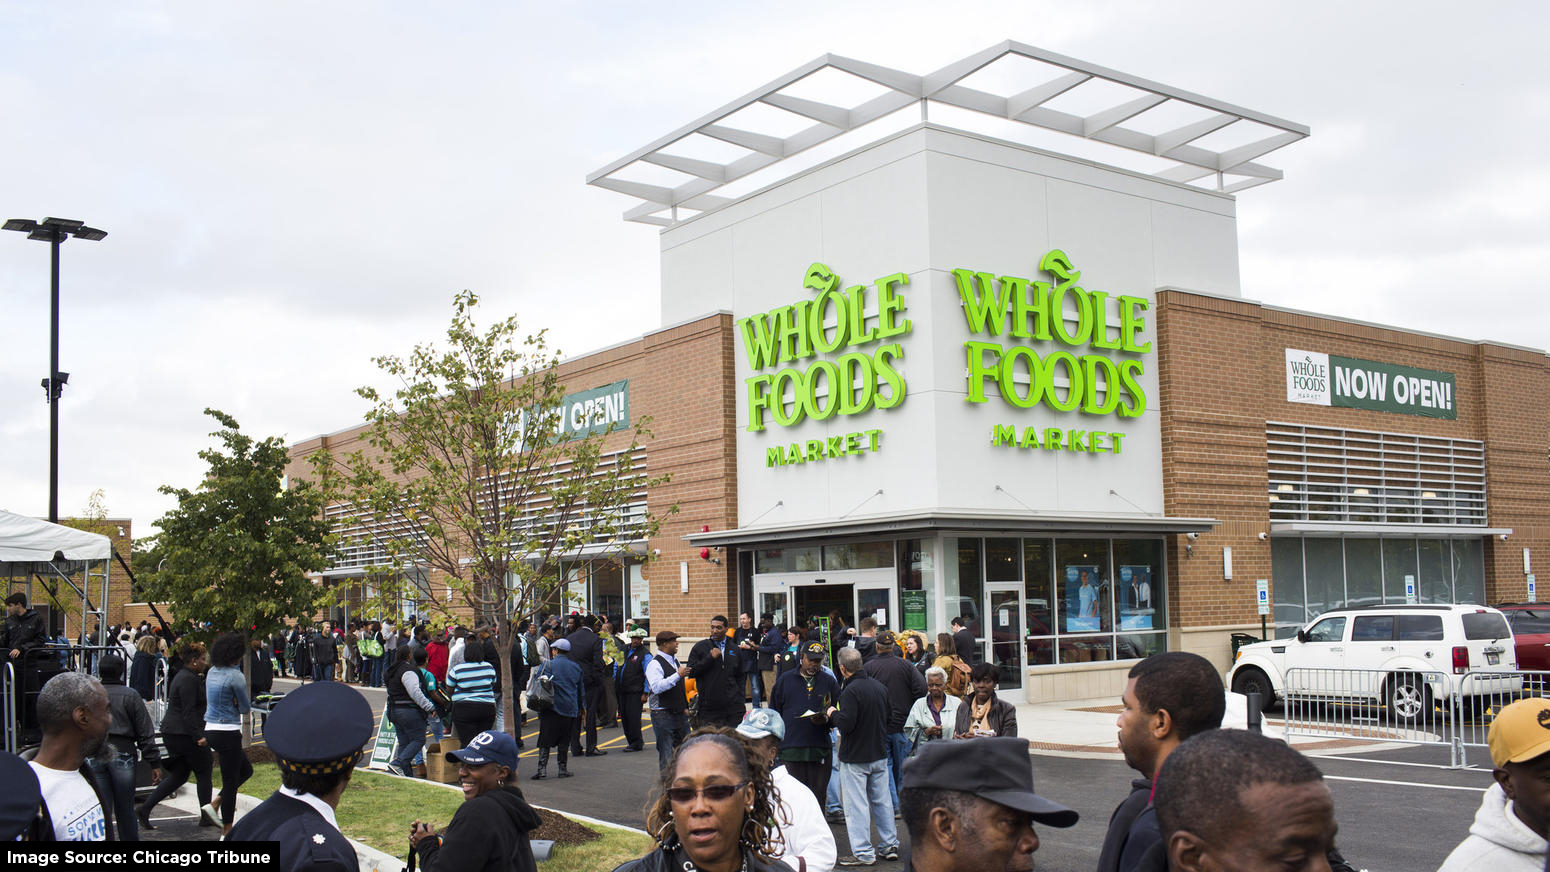 Whole Foods Rockford